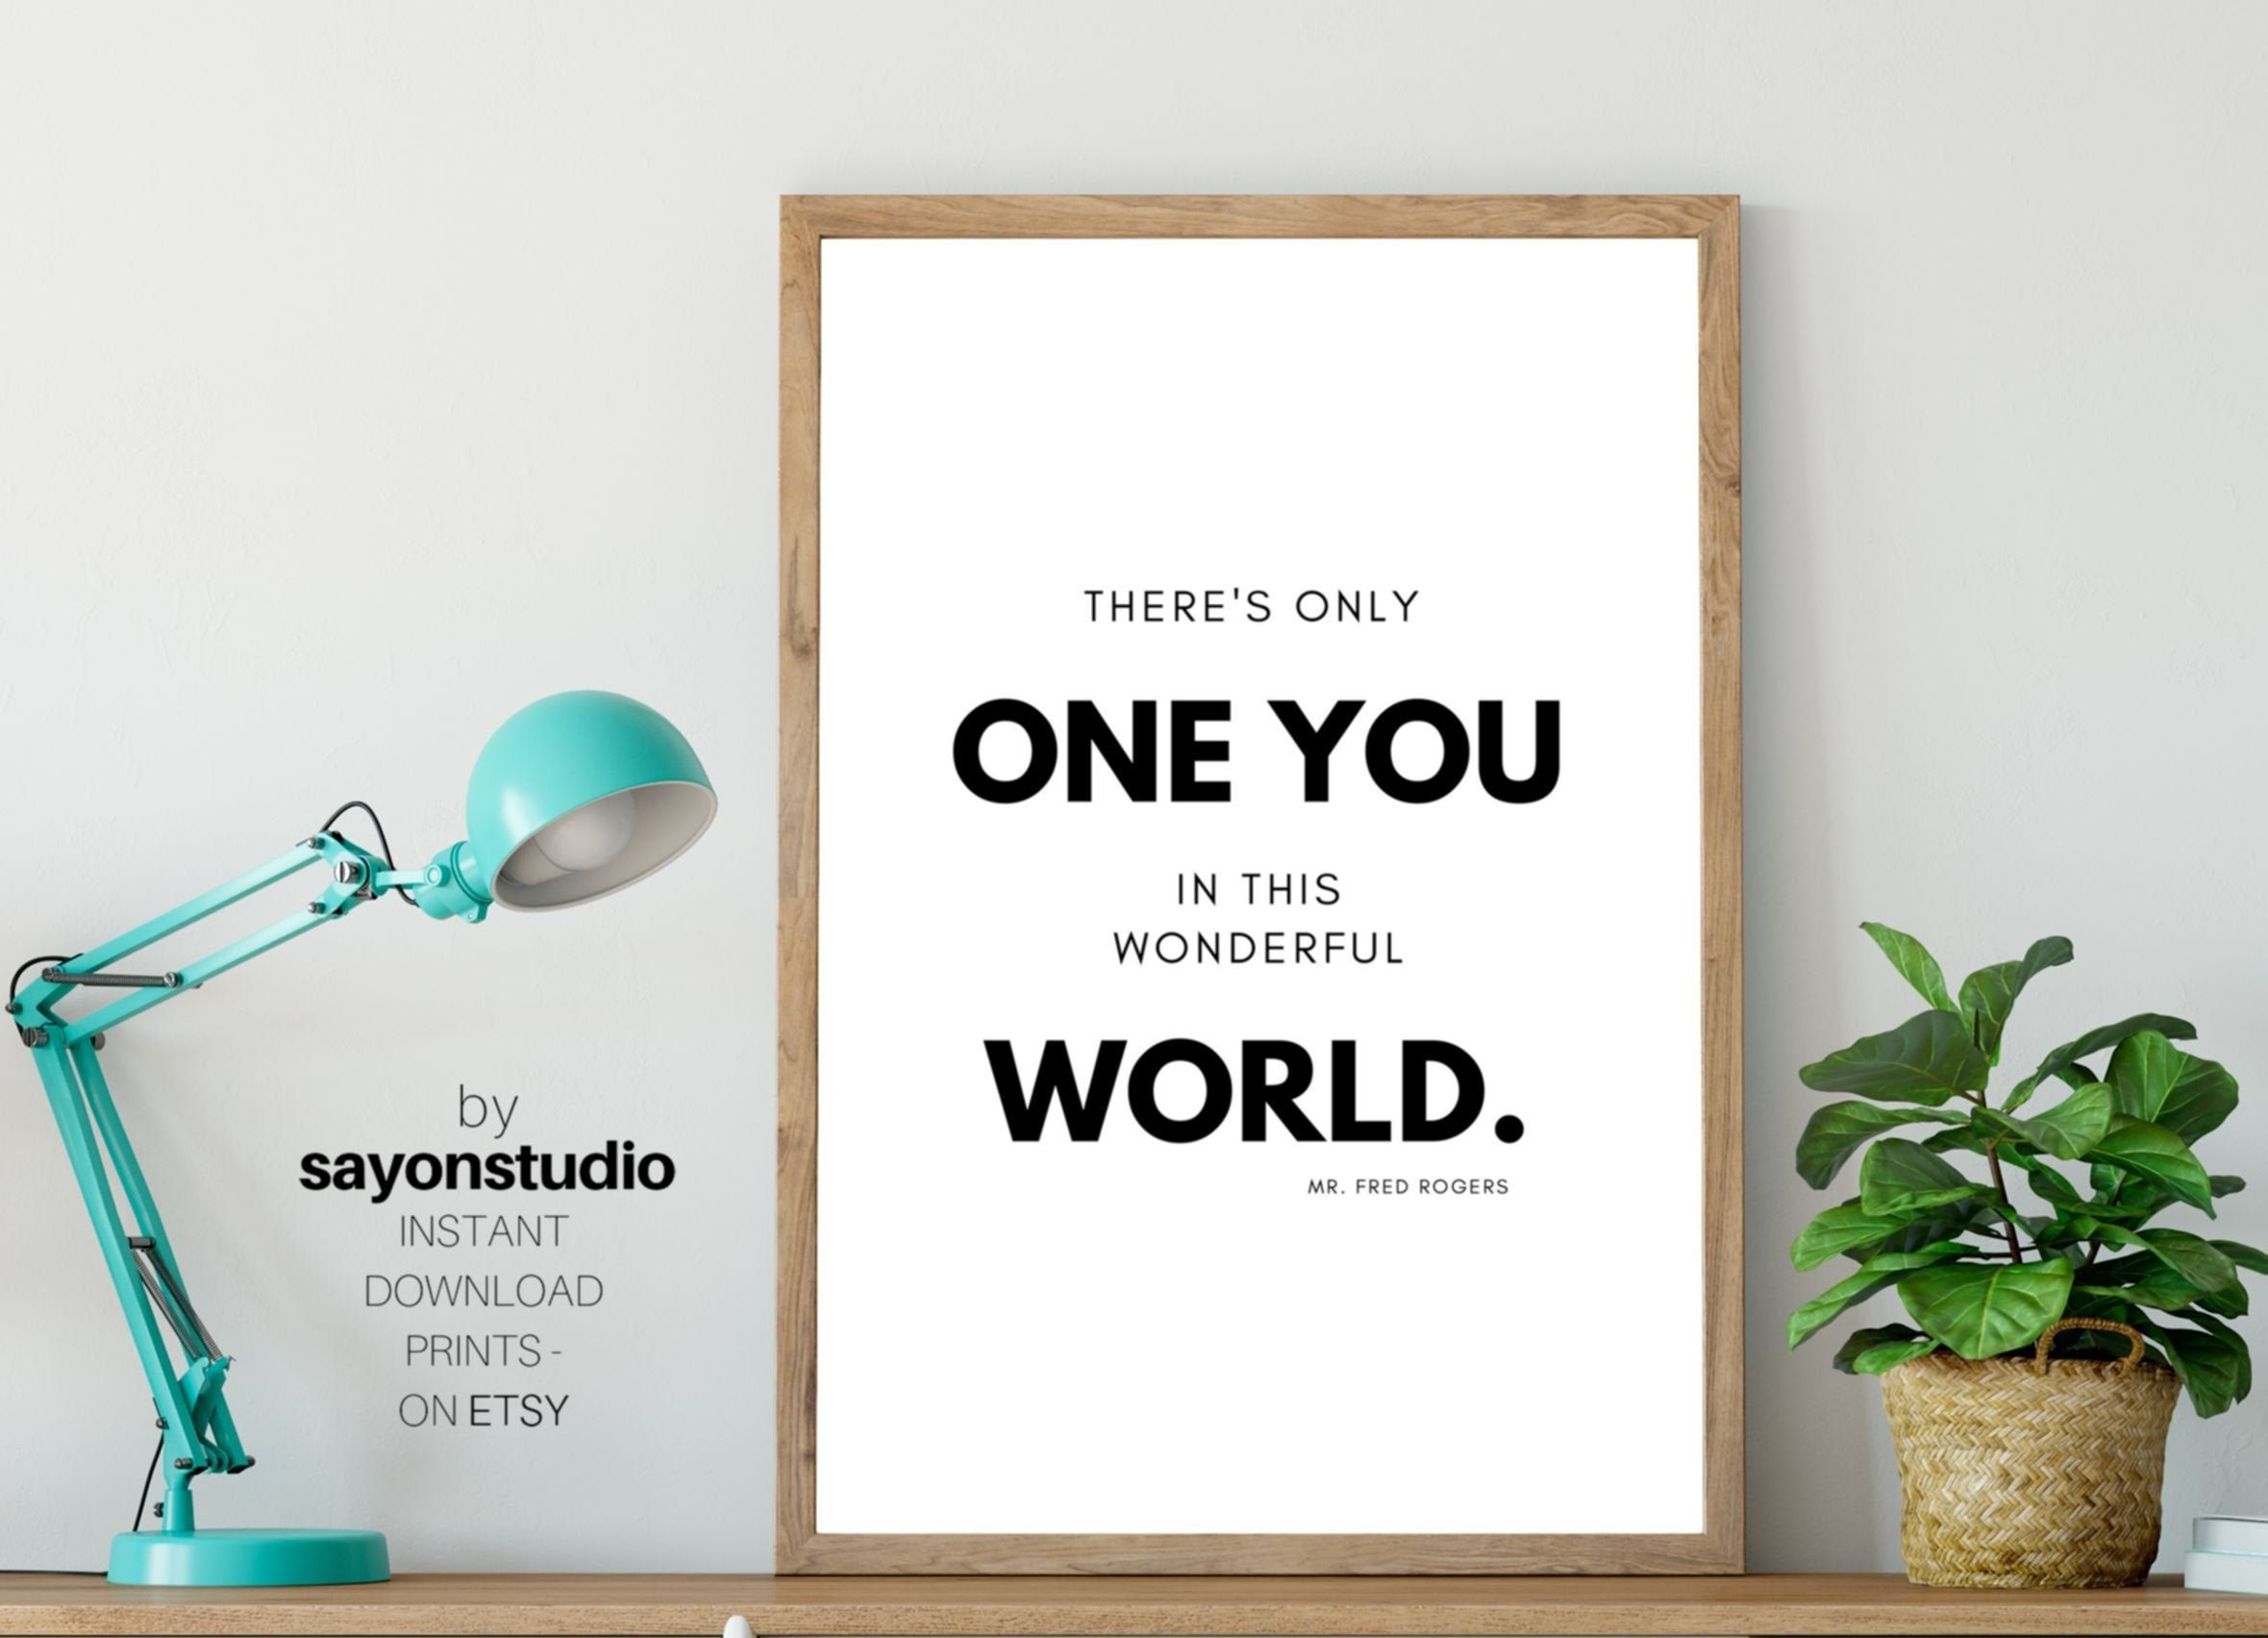 There S Only One You Mr Rogers Quote Inspirational Prints Classroom Decor Printable Wall Art Educational Posters Teacher Digital Download Inspirational Prints Education Poster Printable Wall Art